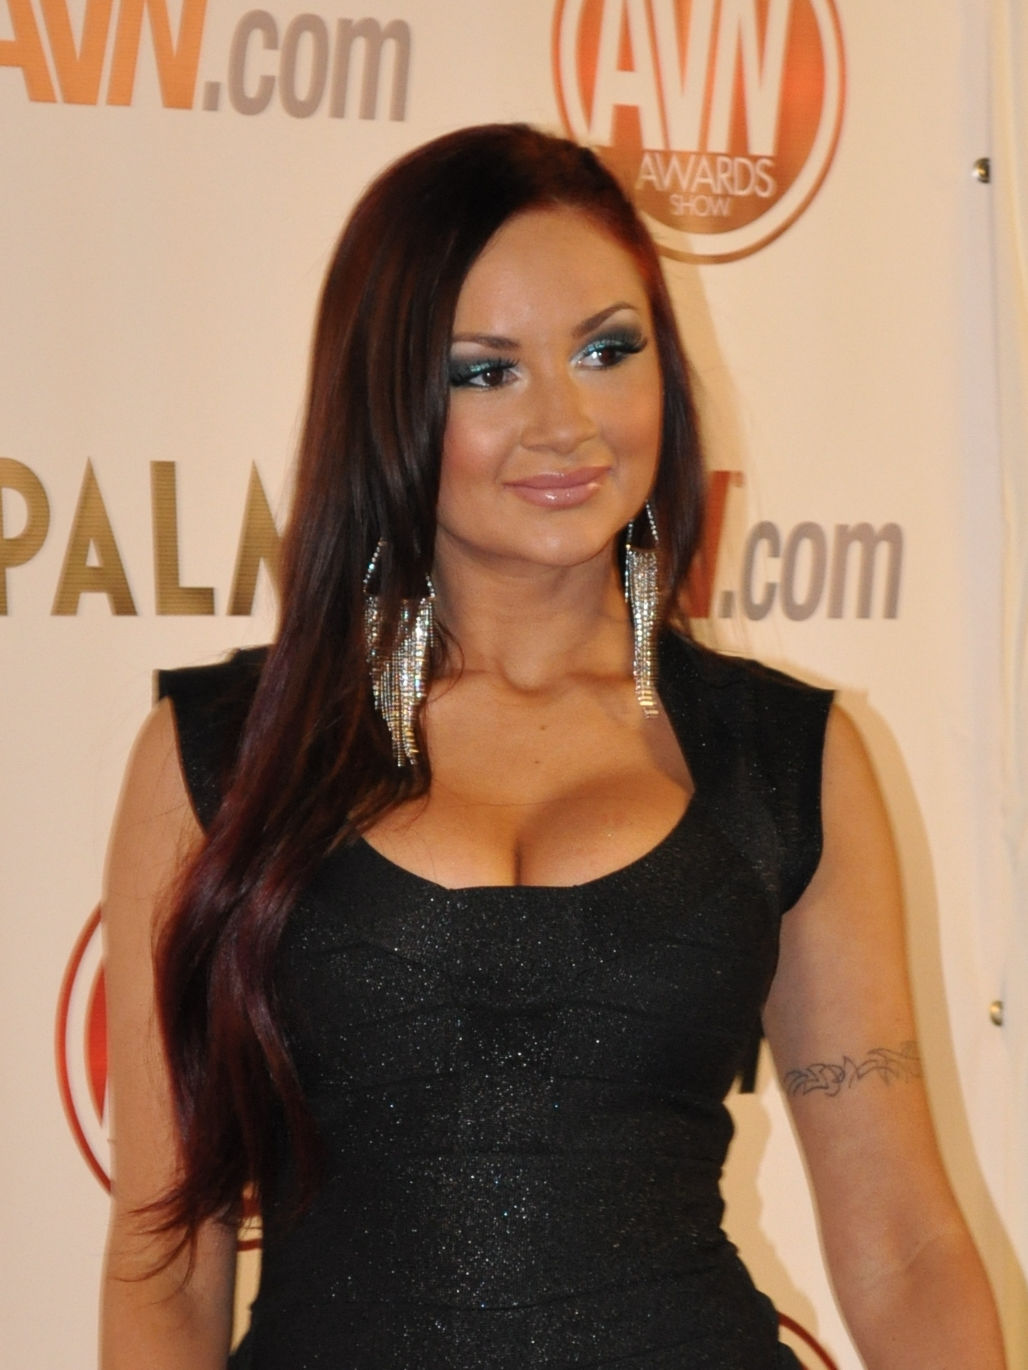 Photo of Amy Ried: American pornographic actress